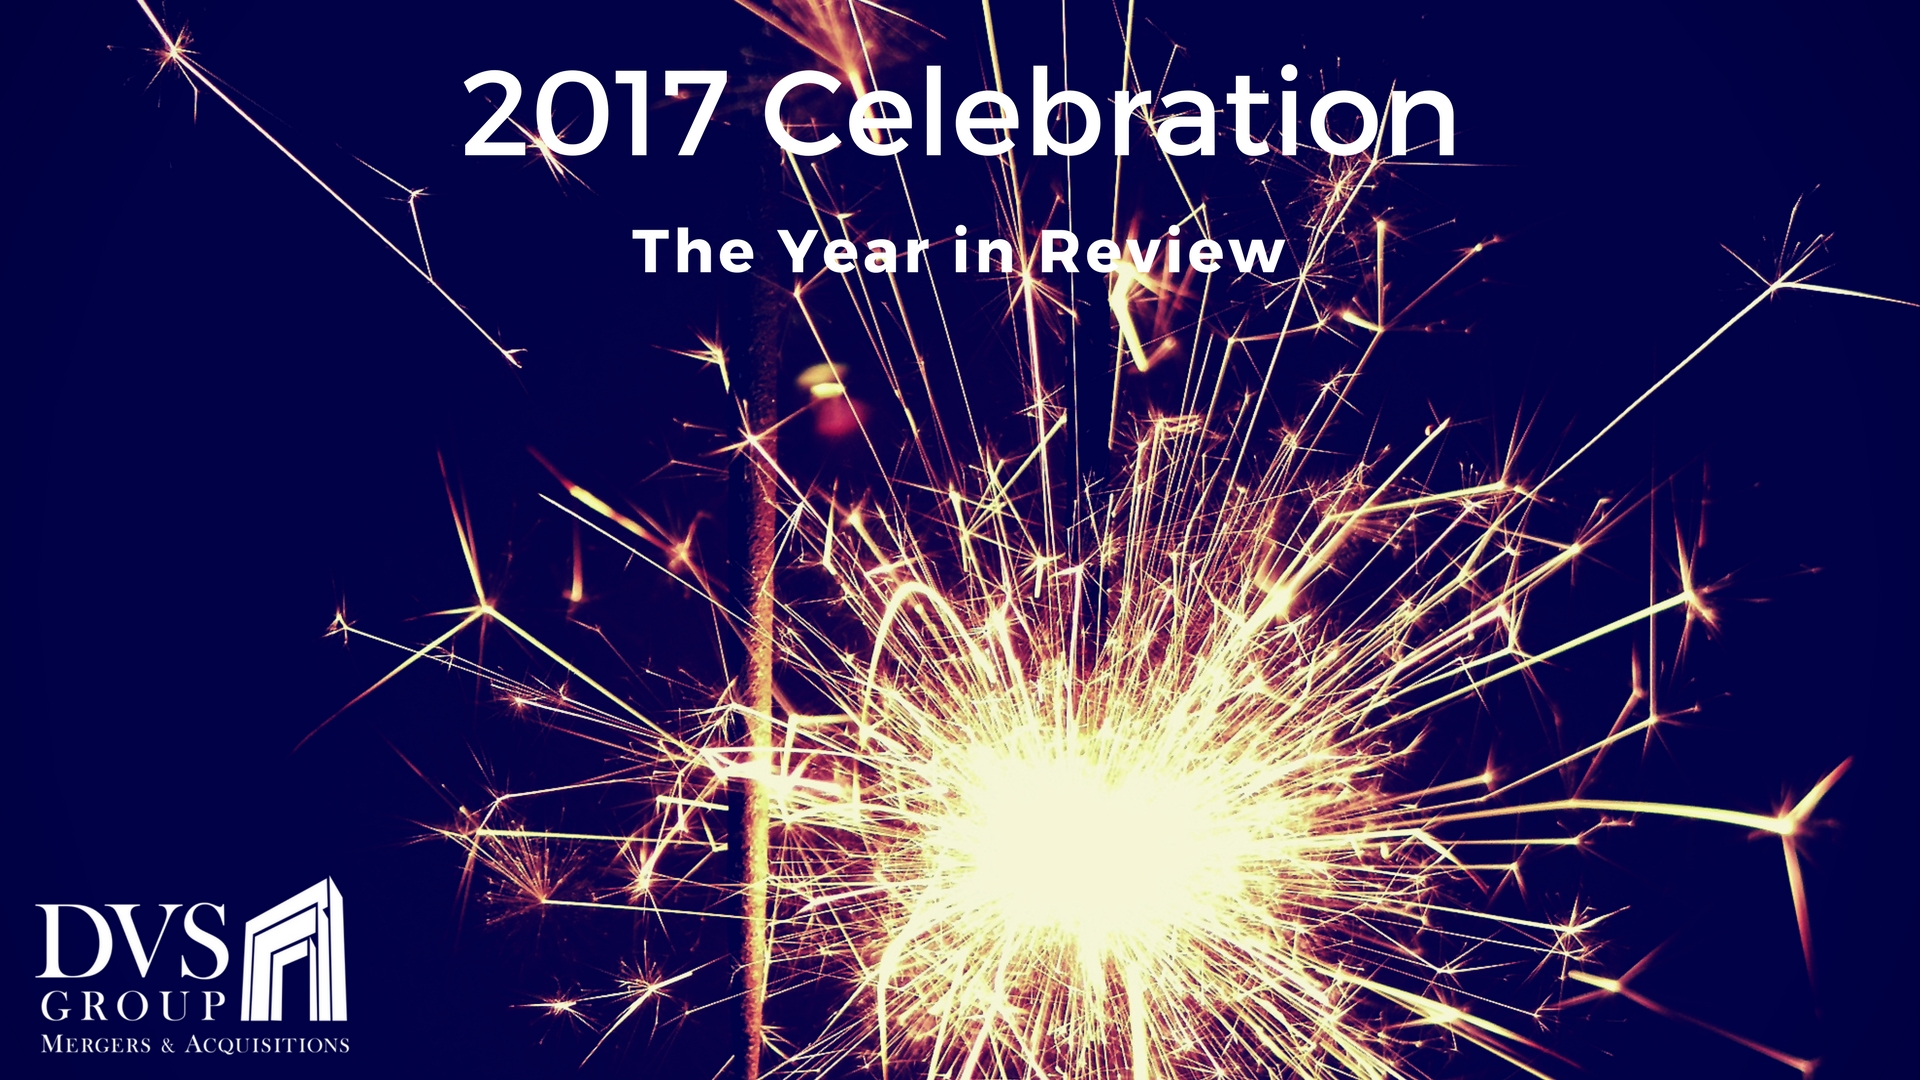 2017 Celebration - The DVS Group